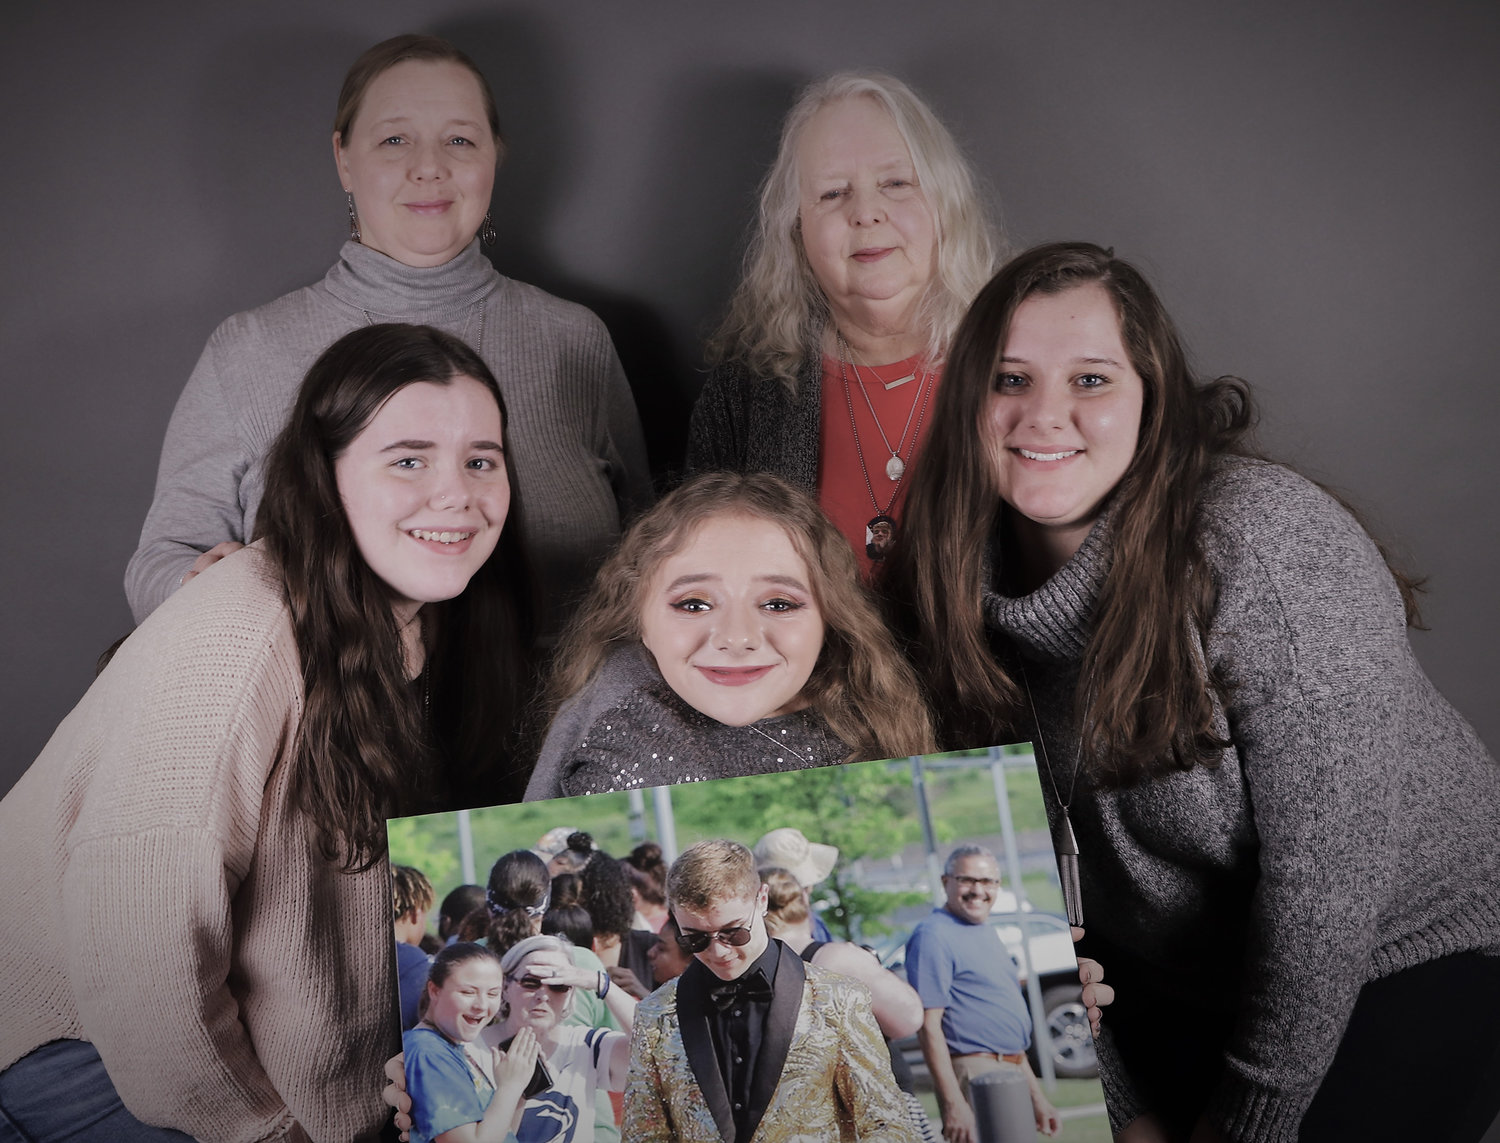 Heather Bernola and Torin's maternal grandmother, Linda Nelson, rear, pose with Heather's three daughters and Torin's biological sisters, Quinn Dworchak, Kelsey Dworchak and Mikala Dworchak. They are holding a picture of Torin from the Middletown Area High School prom in 2019.